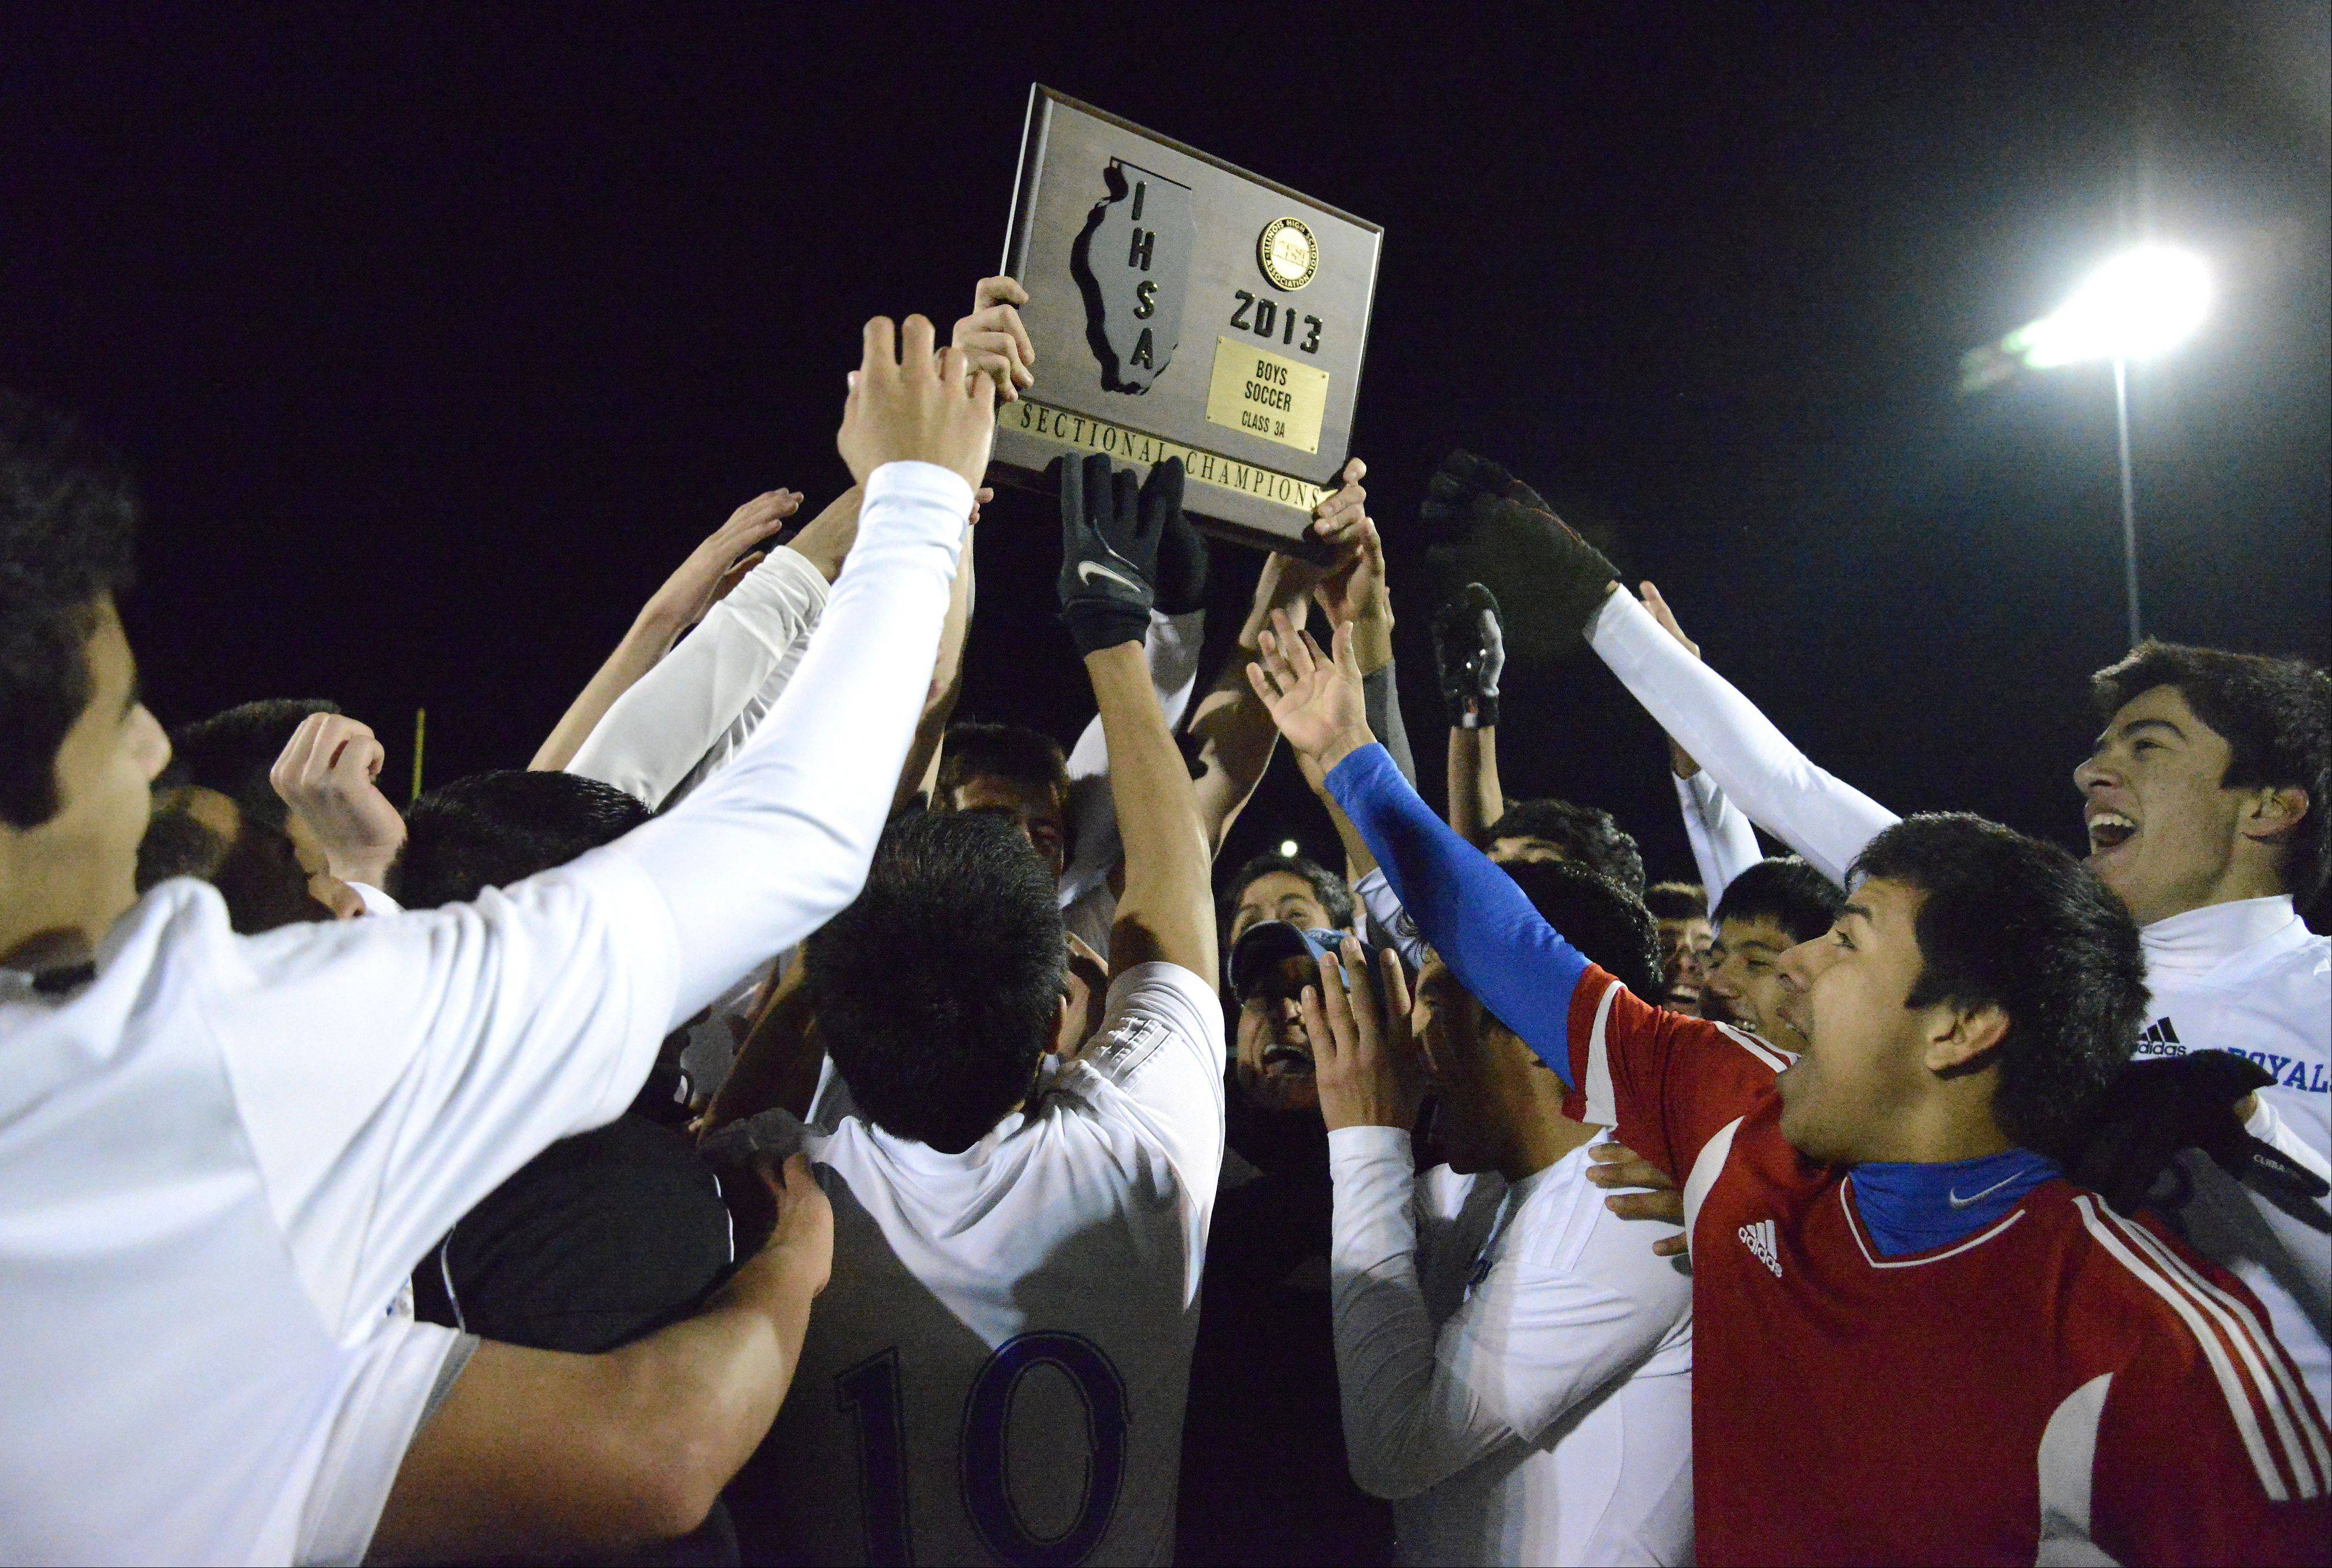 Larkin goalie Aldair Dominguez (right, in red) reaches up to touch the Royals' Class 3A sectional championship plaque after defeating McHenry 1-0 at Huntley High School on Saturday.